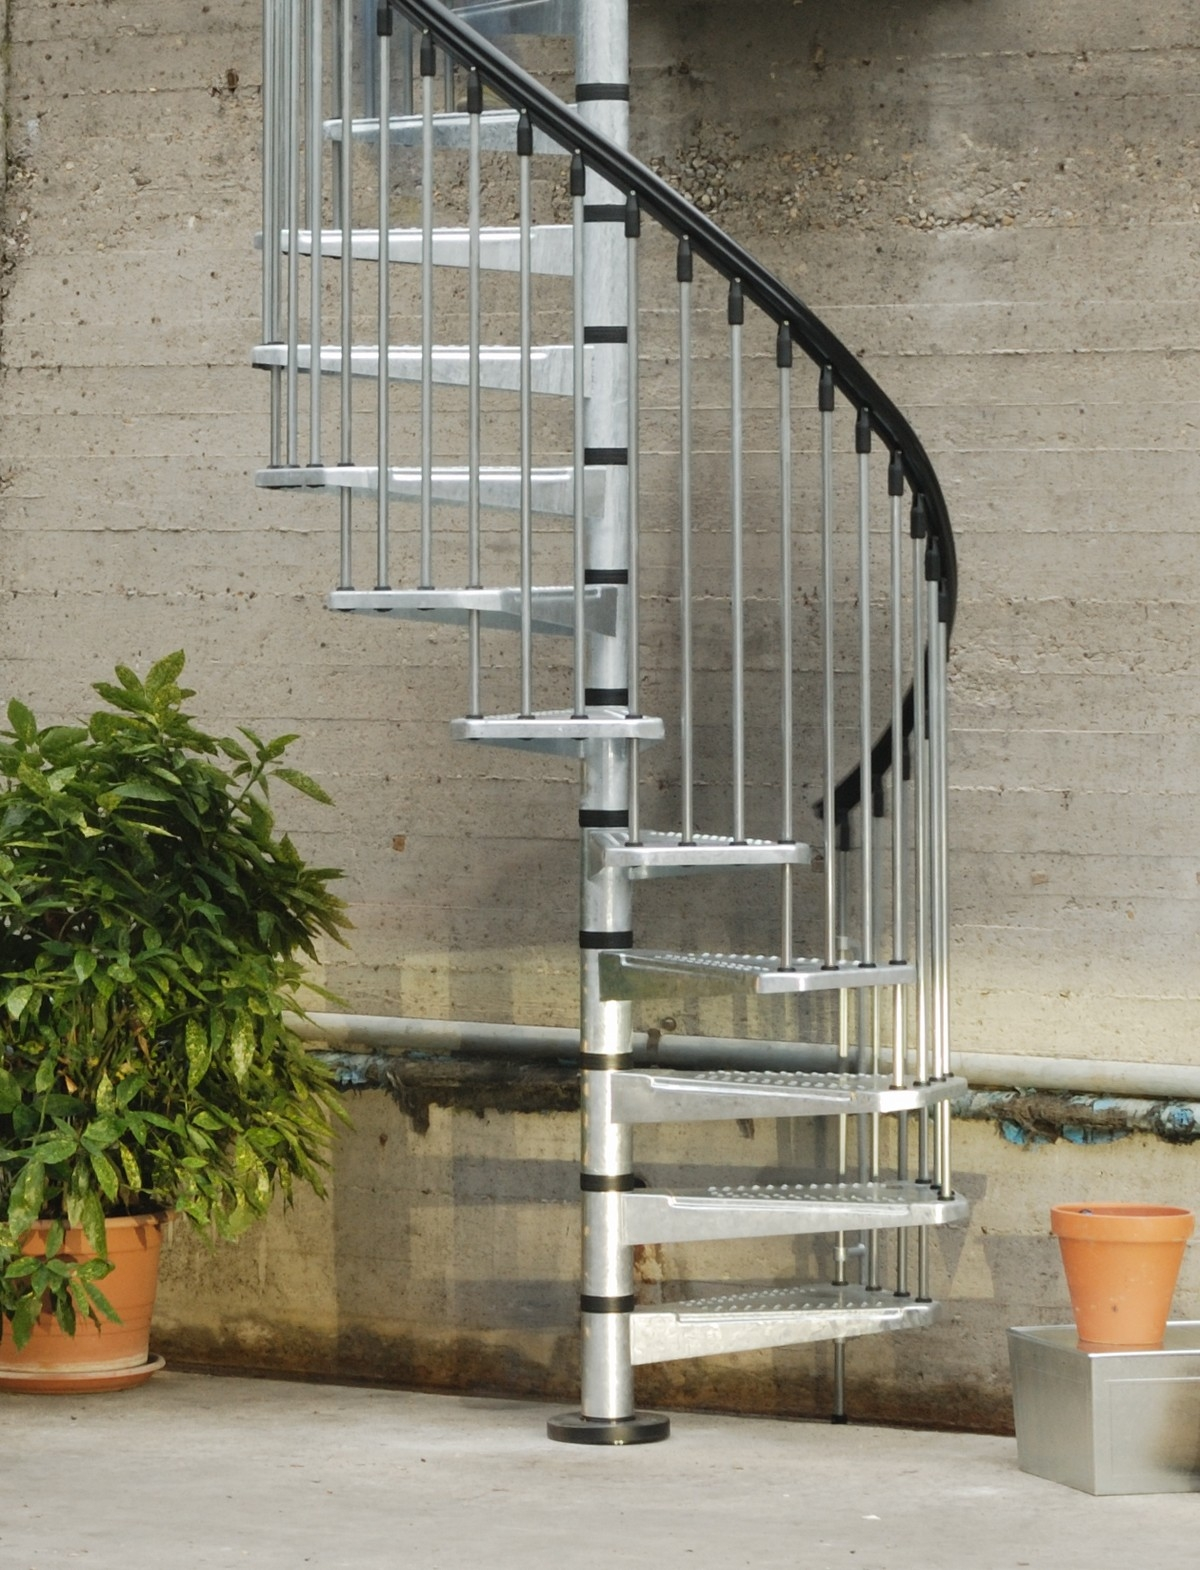 Metal Outdoor Spiral Staircase Exterior Stairs | Outdoor Spiral Staircase For Deck | Farmhouse | Basement | Multi Level | 2Nd Floor | Steel